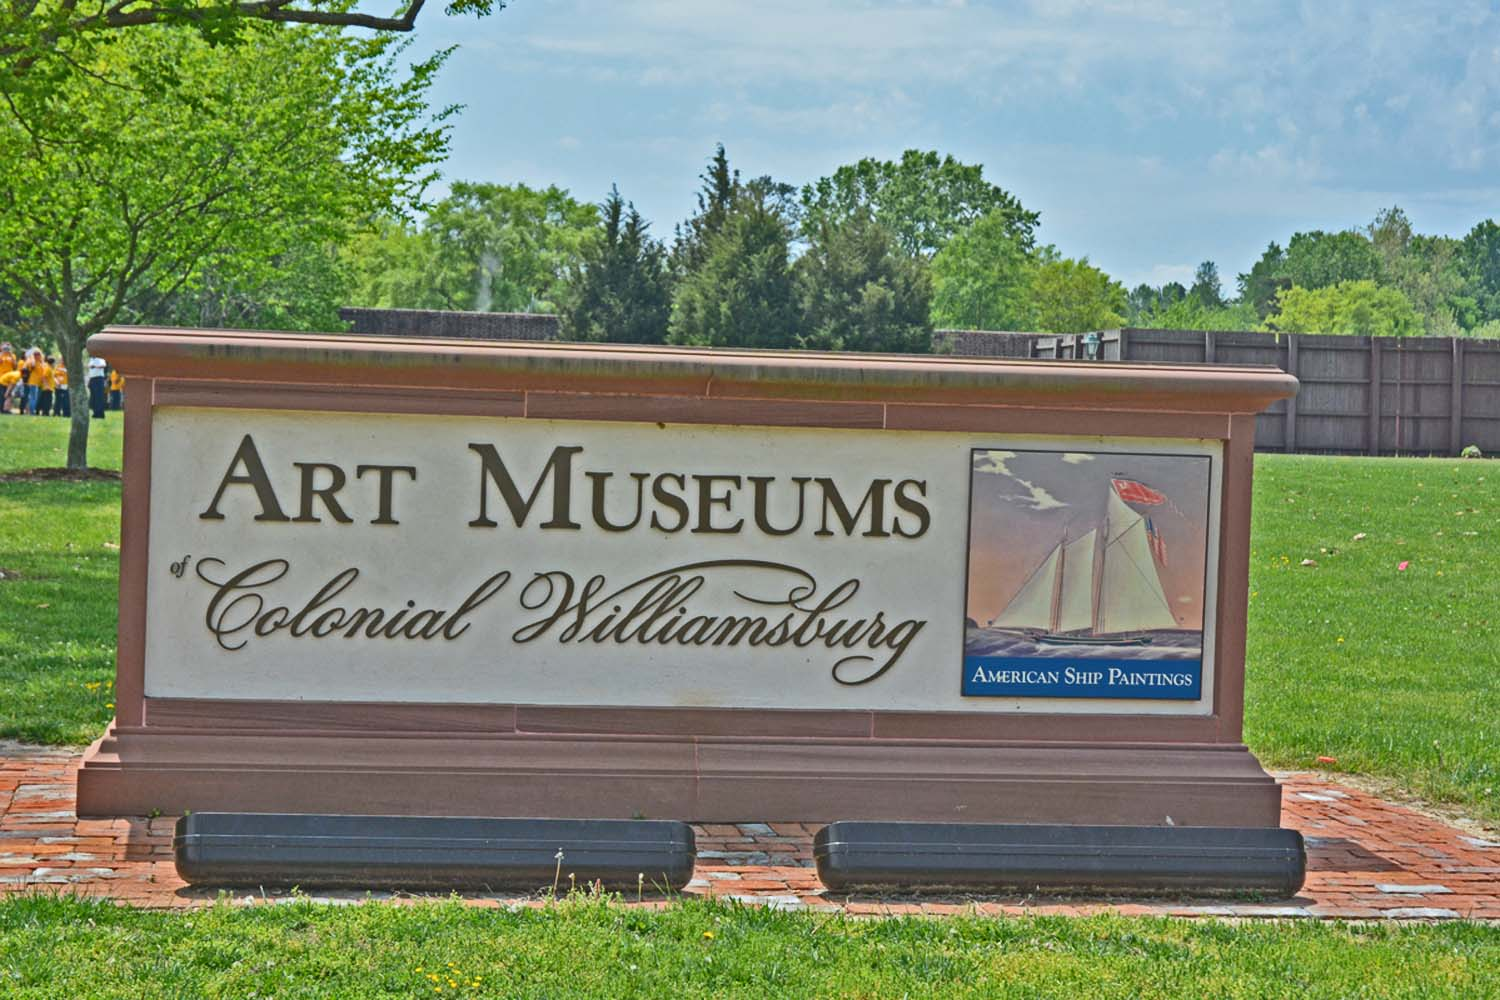 Art Museums at Colonial Williamsburg